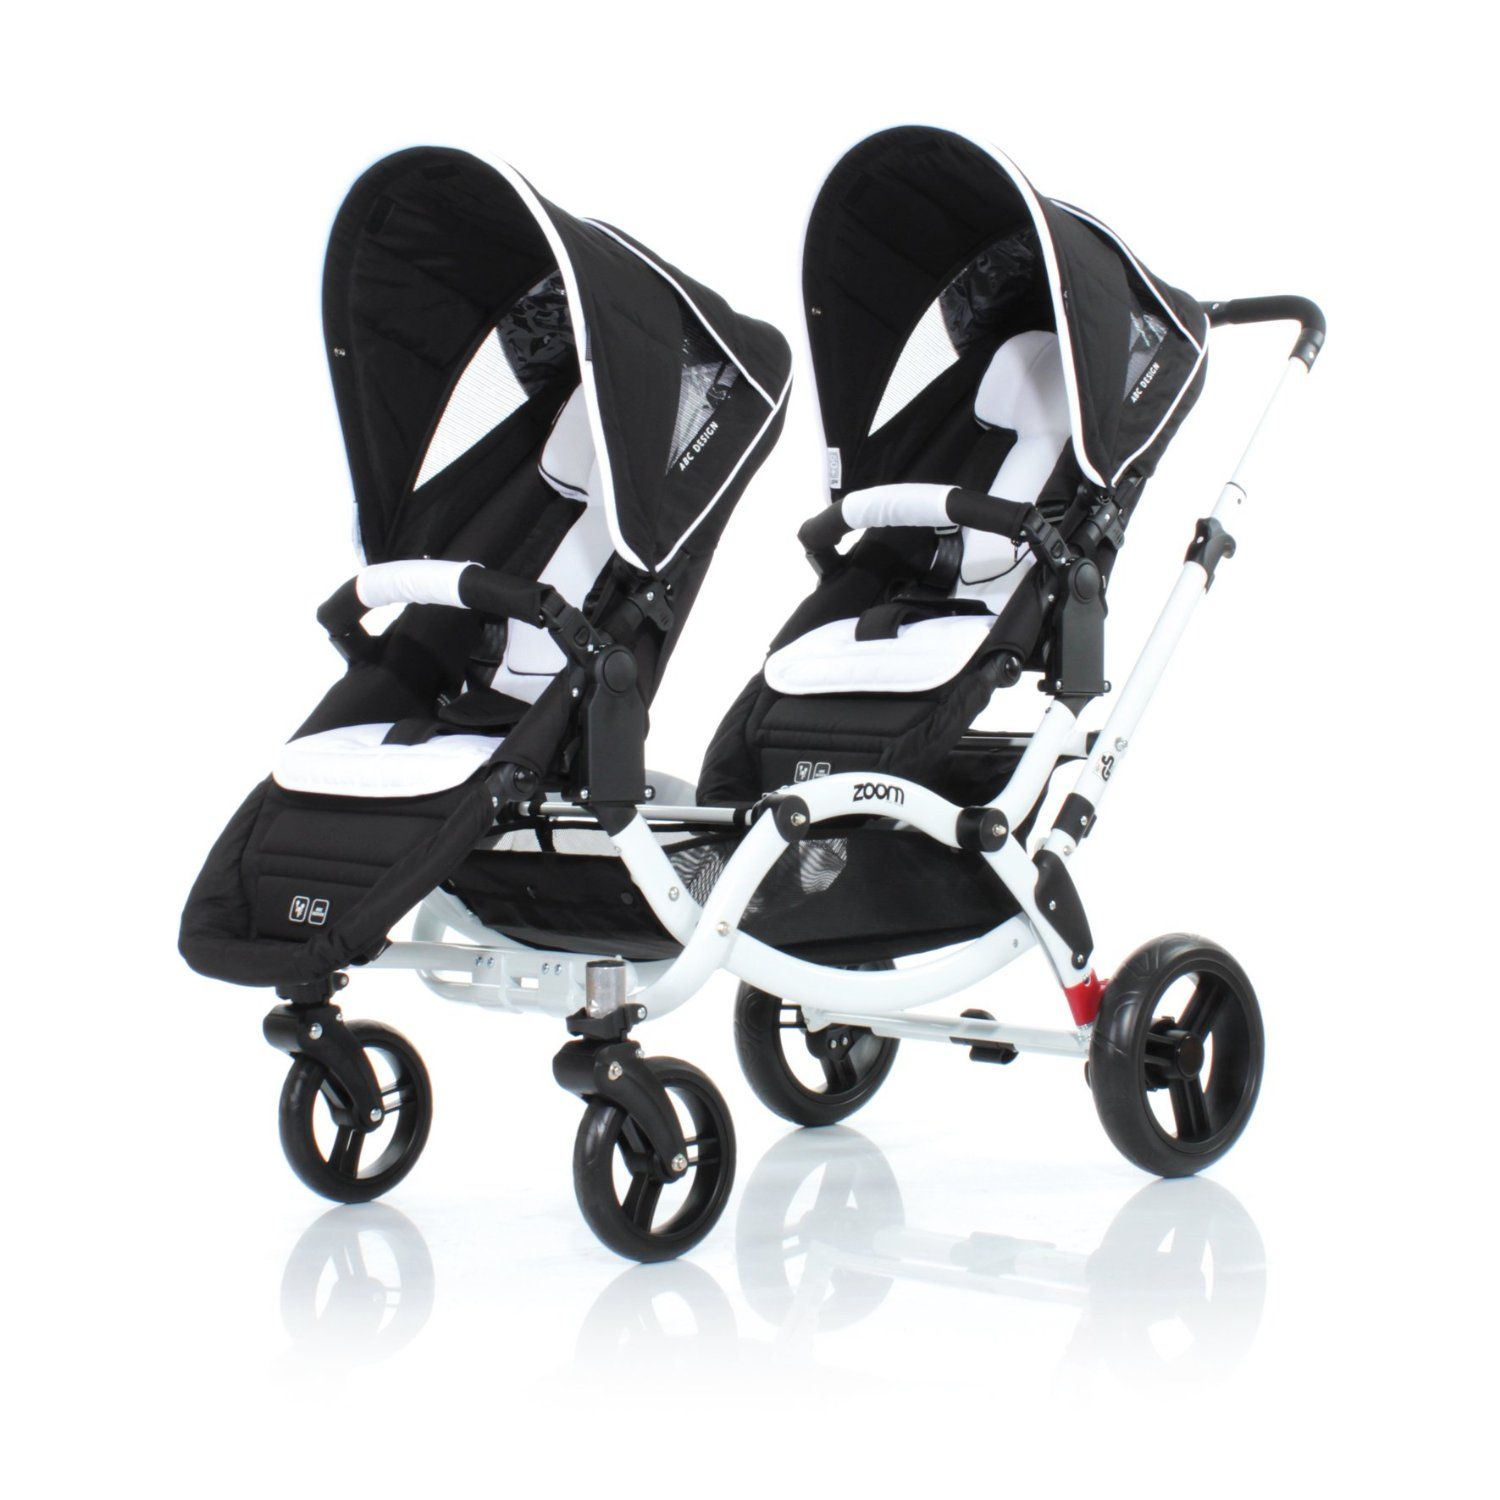 Twin Stroller In Dubai Abc Design Zoom Tandem Stroller White Black Chassis